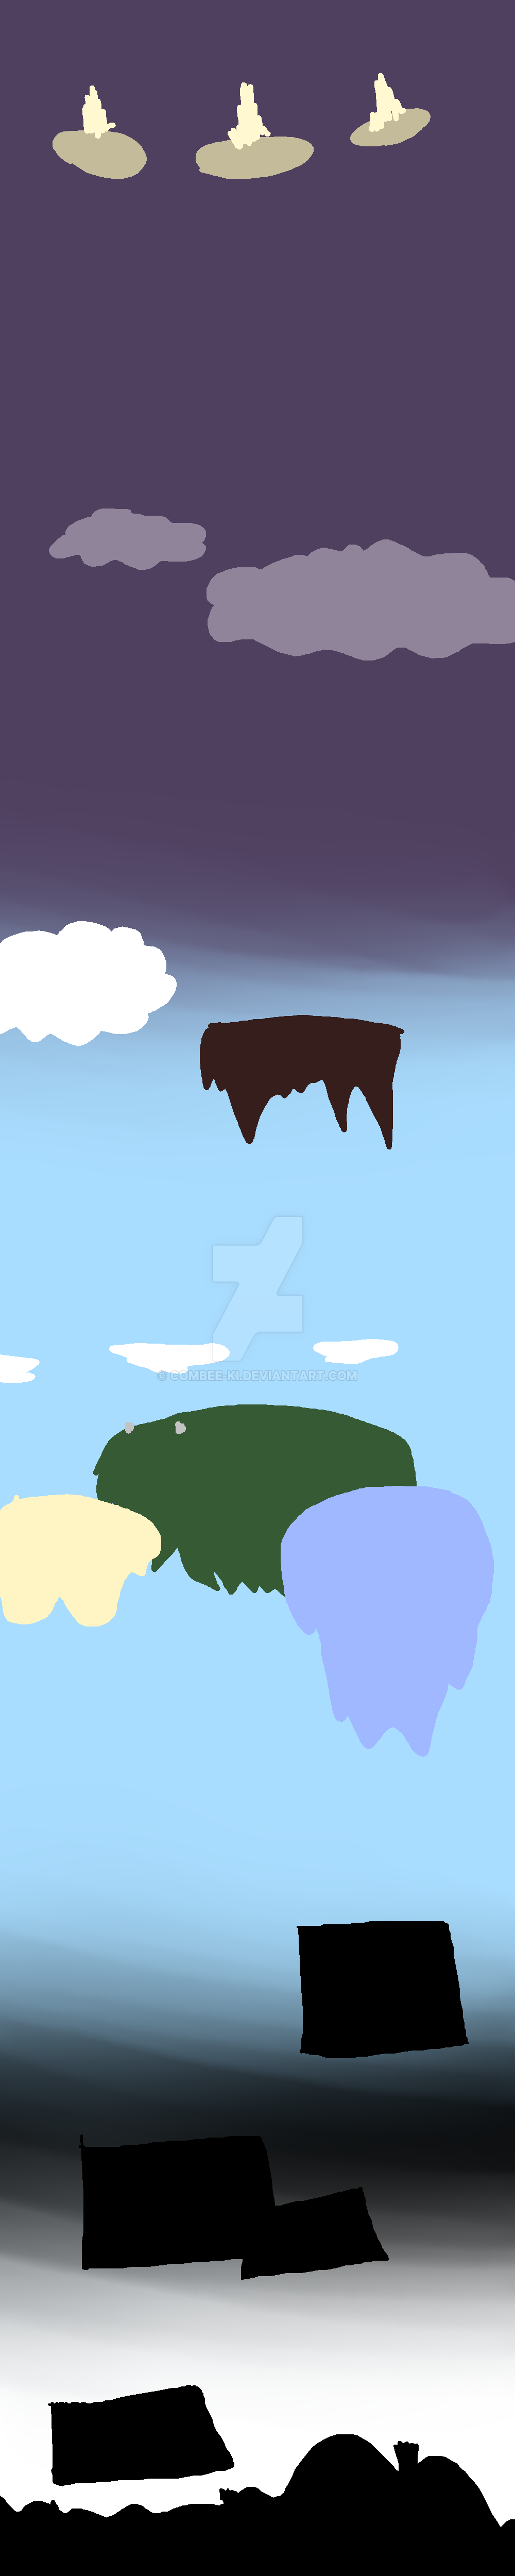 Beas world map vertical by bee the pancake cat on deviantart beas world map vertical by bee the pancake cat gumiabroncs Images